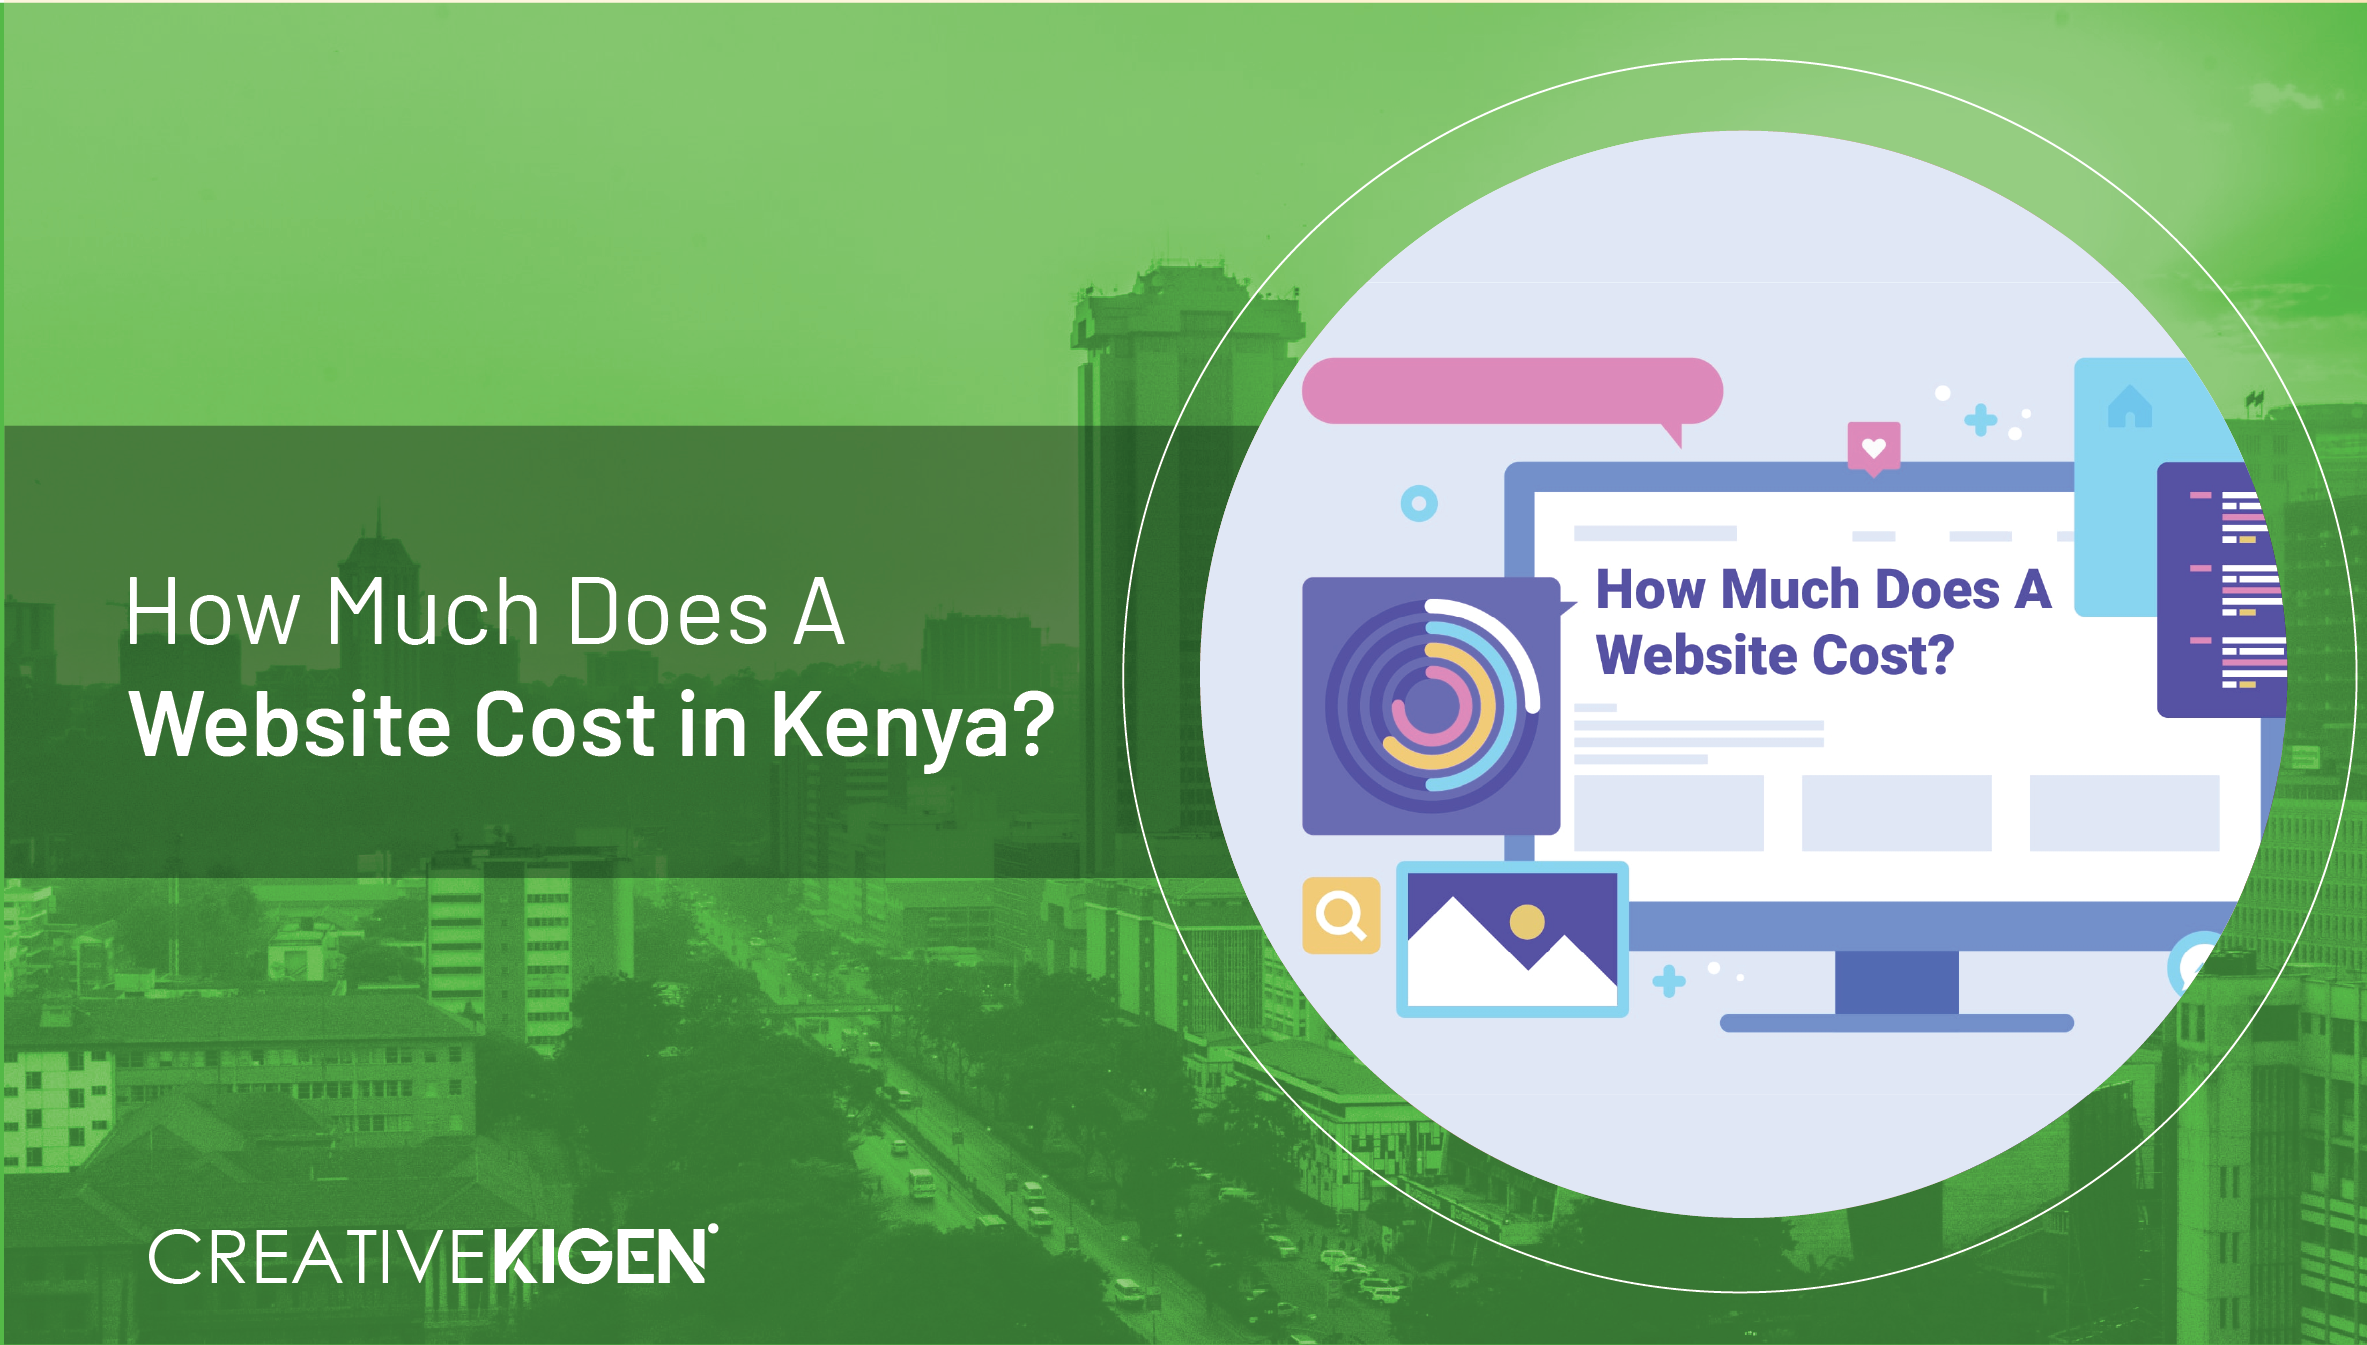 How Much Does A Website Cost in Kenya? (2021 Estimates)